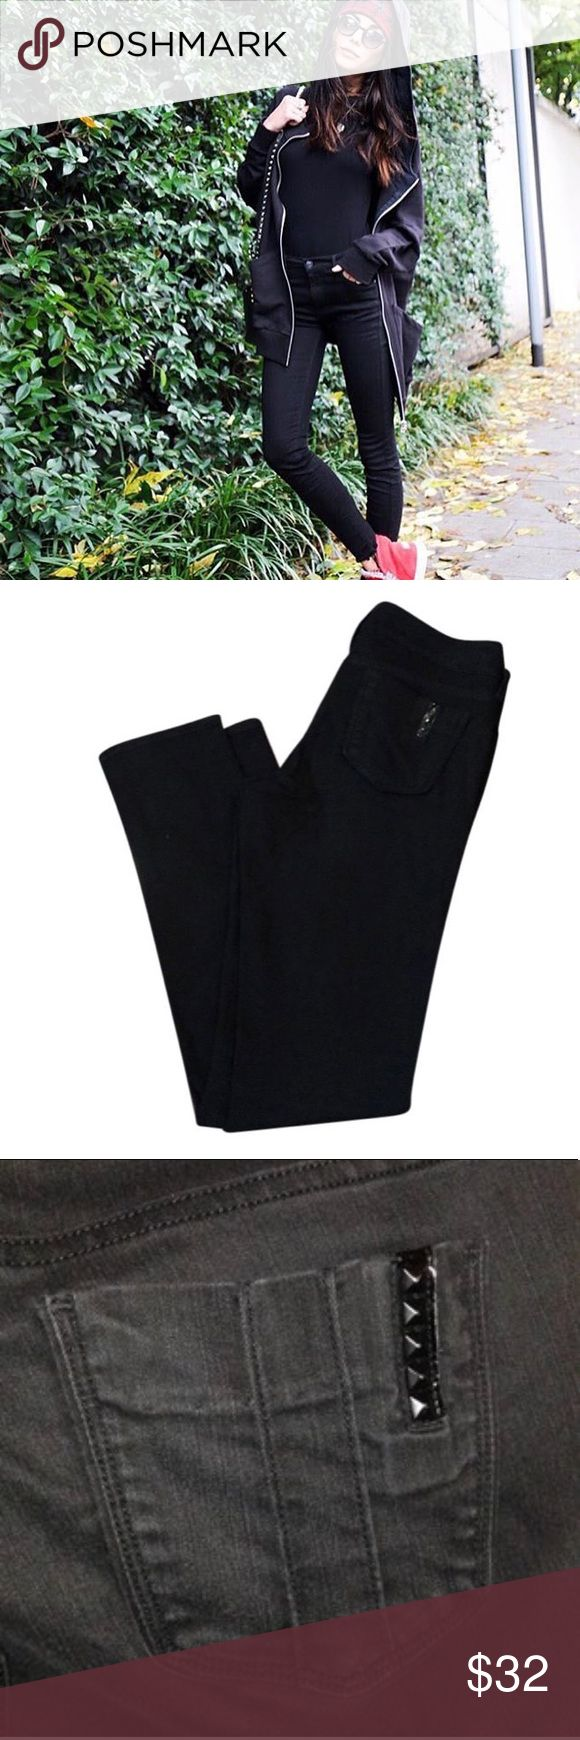 Black Orchid Jeans Black orchid denim jeans in jet black, with back rivets on pocket. Straight leg cut, in pre-loved condition. Black Orchid Jeans Straight Leg